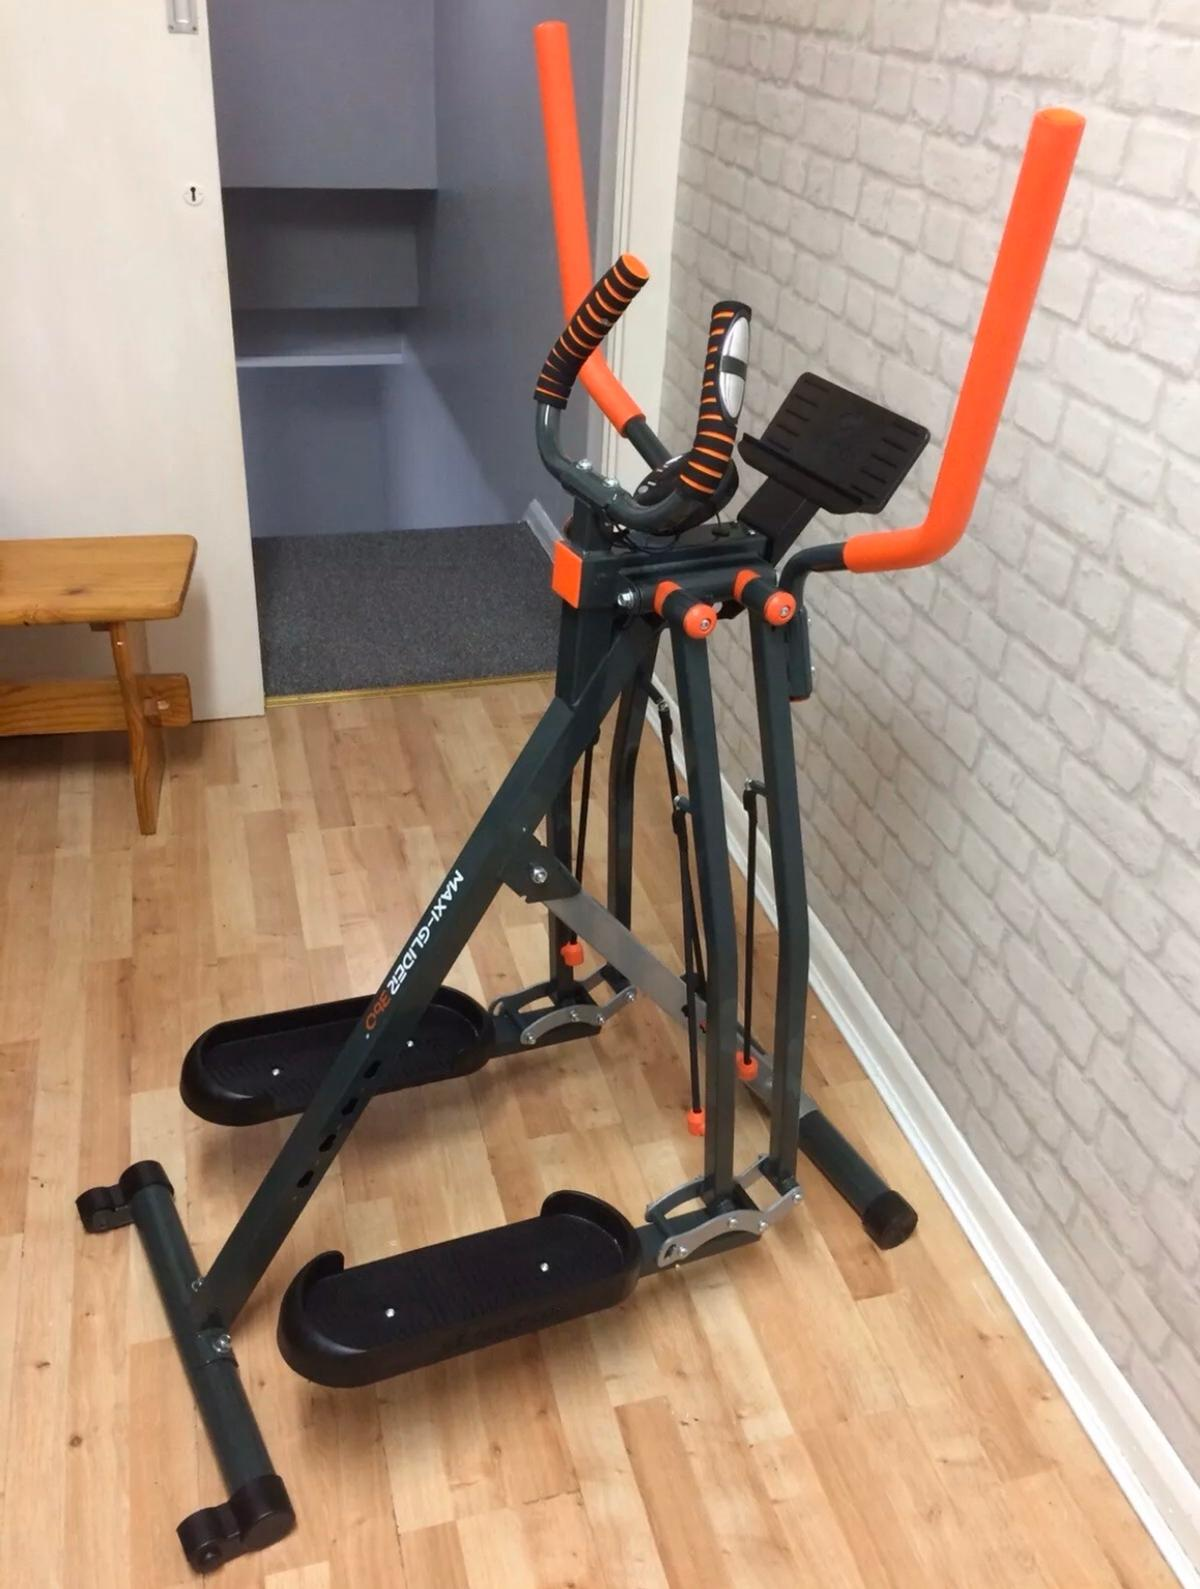 Good Condition hardly used Maxi Glider 360 gives you a full body workout cardio & strength easy fold comes with manual & workout booklet .